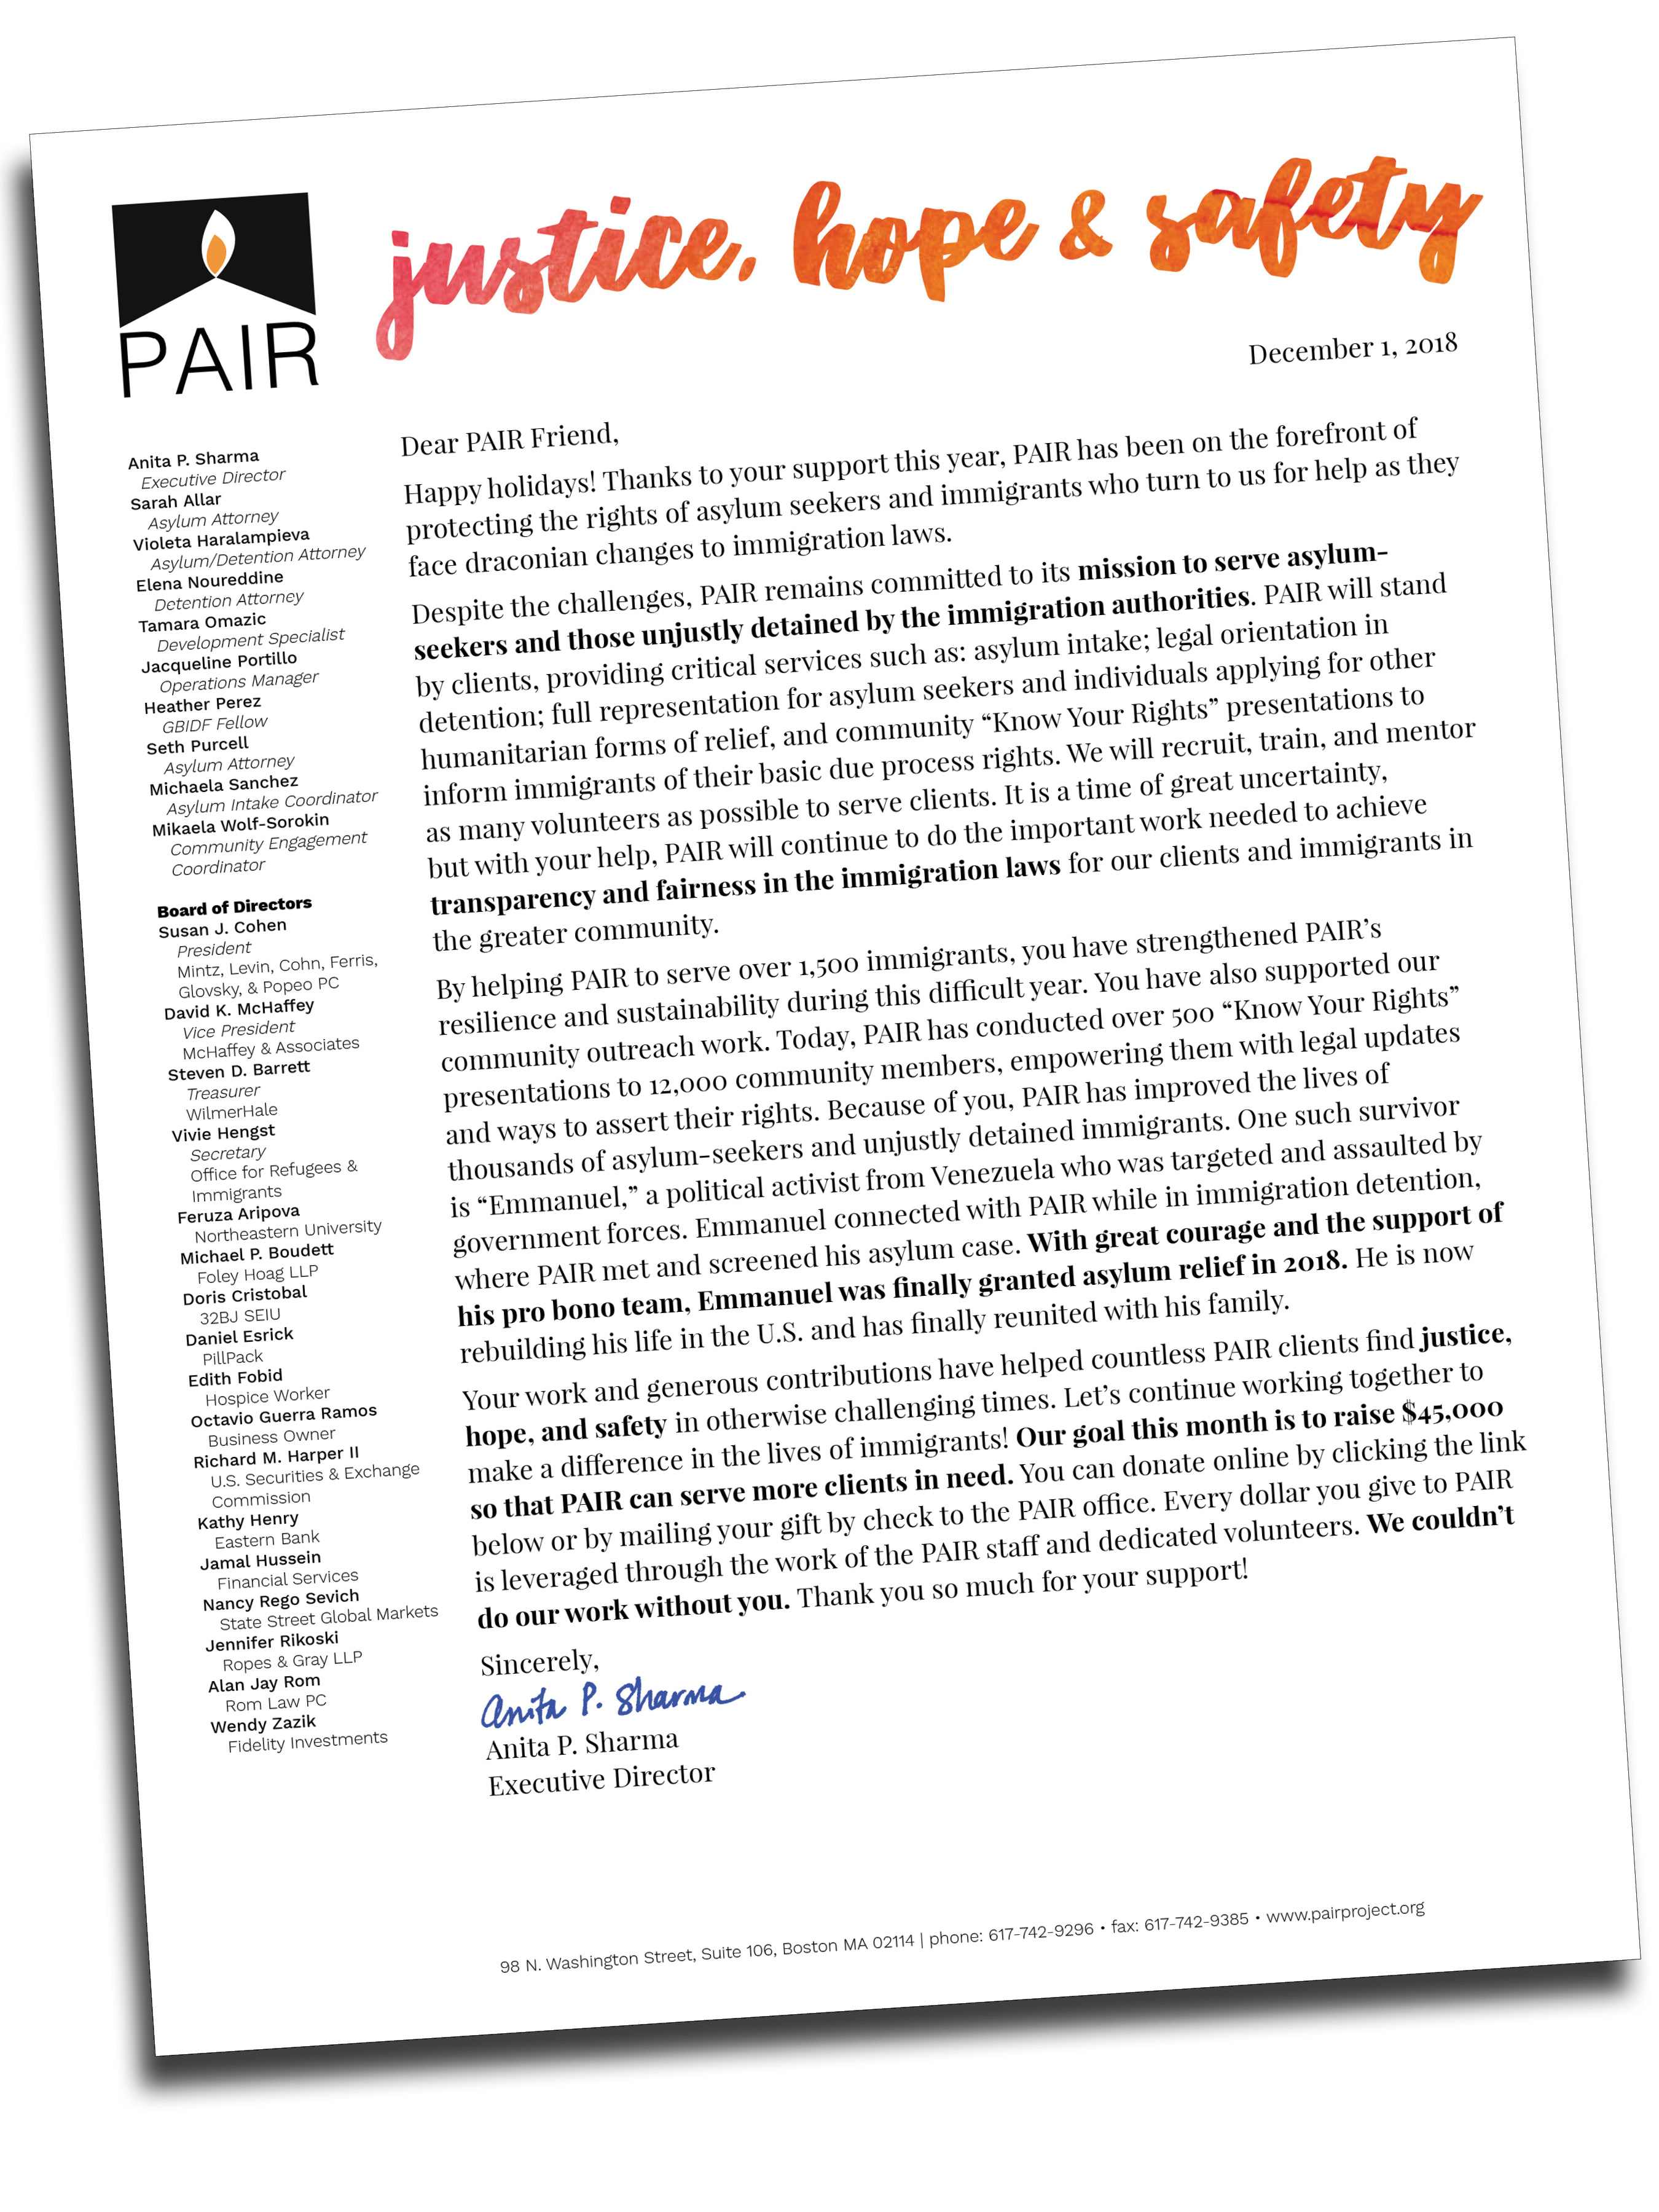 Annual appeal letter